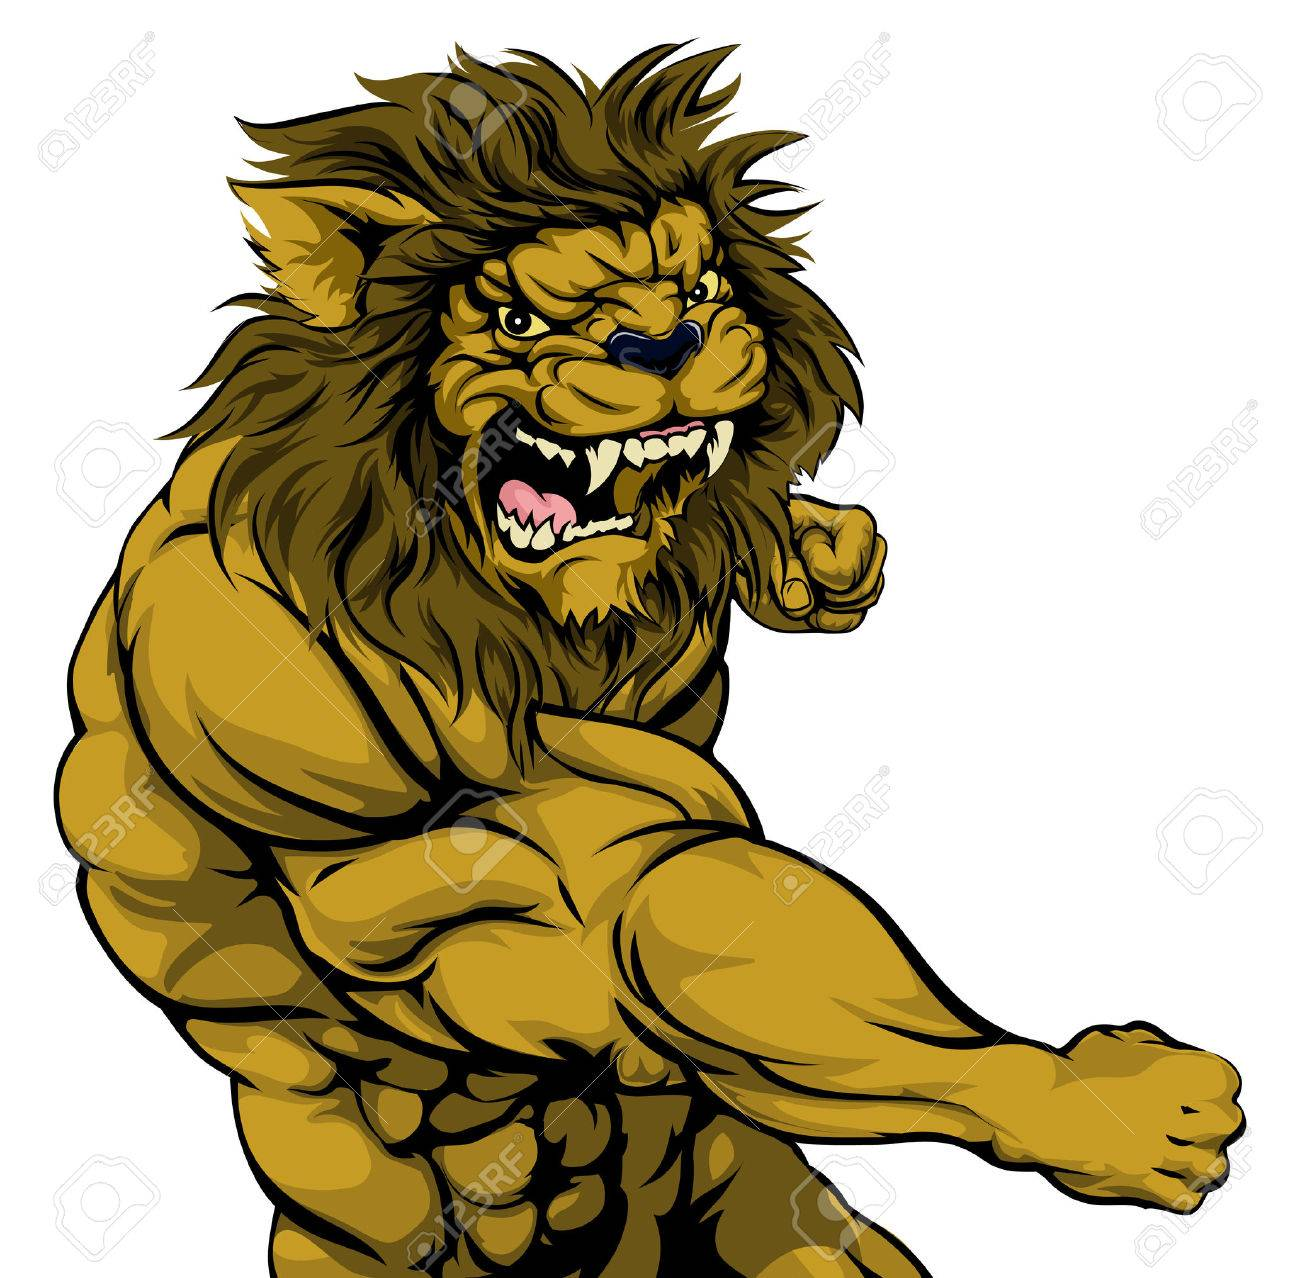 1300x1278 A Tough Muscular Lion Character Sports Mascot Attacking